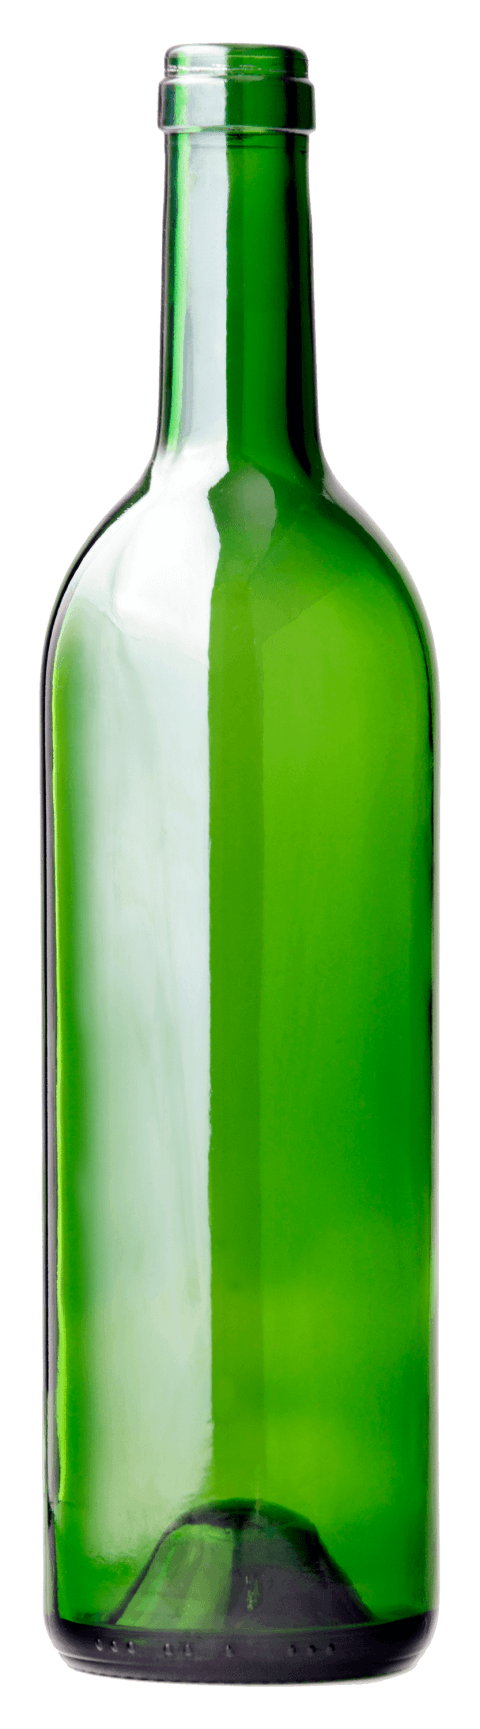 Long gree free images. Empty liquor bottle png banner transparent